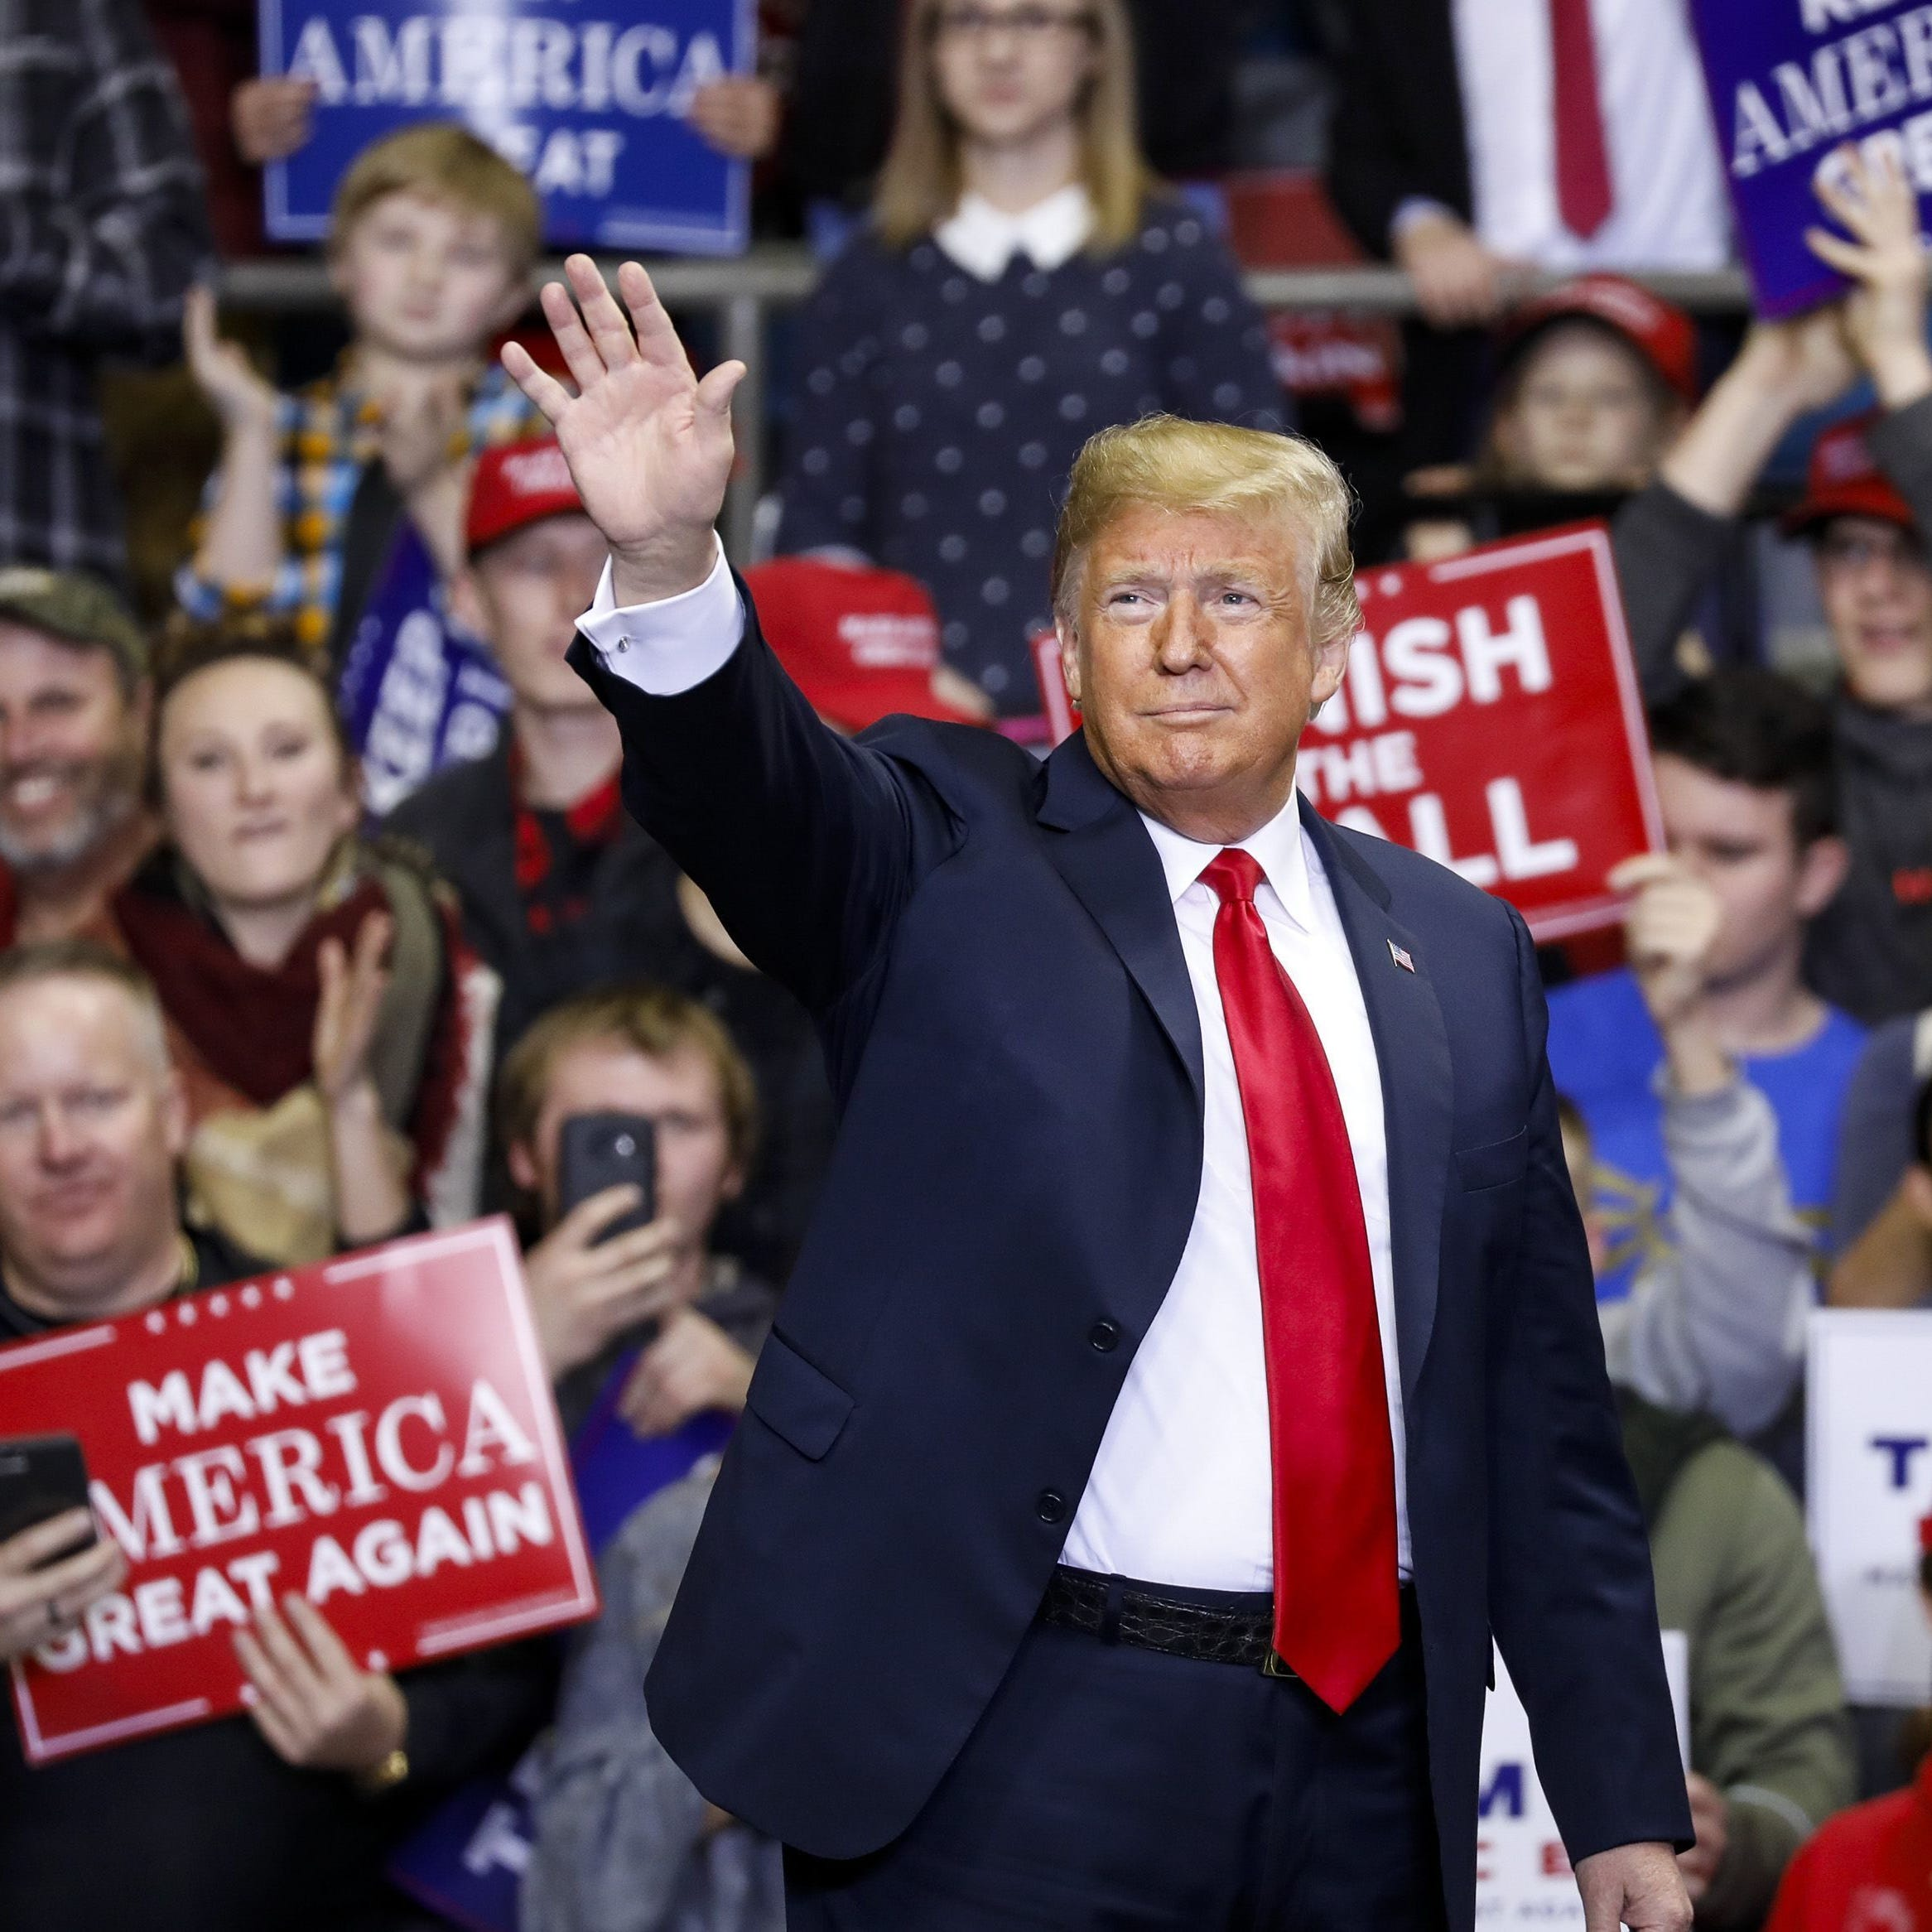 President Trump arrives for a campaign rally at the County War Memorial Coliseum on Nov. 5, 2018, in Fort Wayne, Indiana.